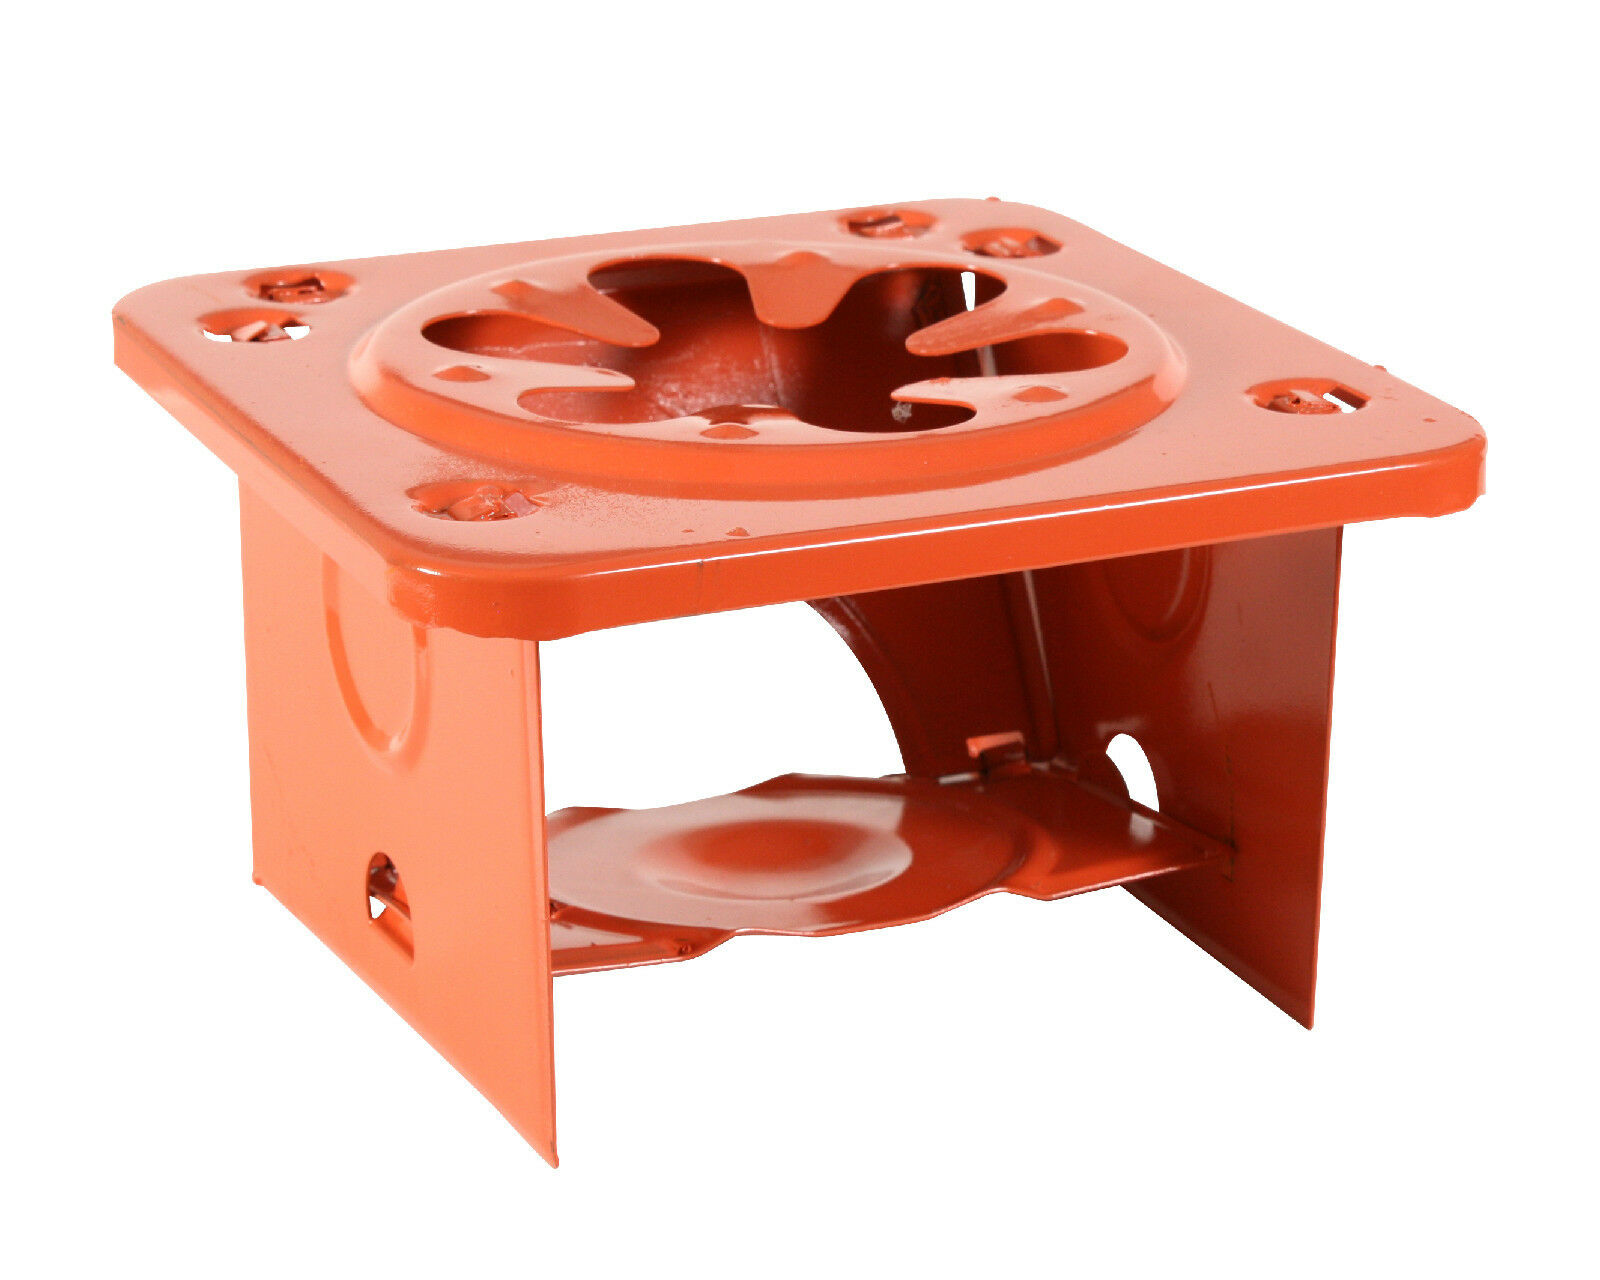 Single burner folding stove camping safe and compact orange redhco 365